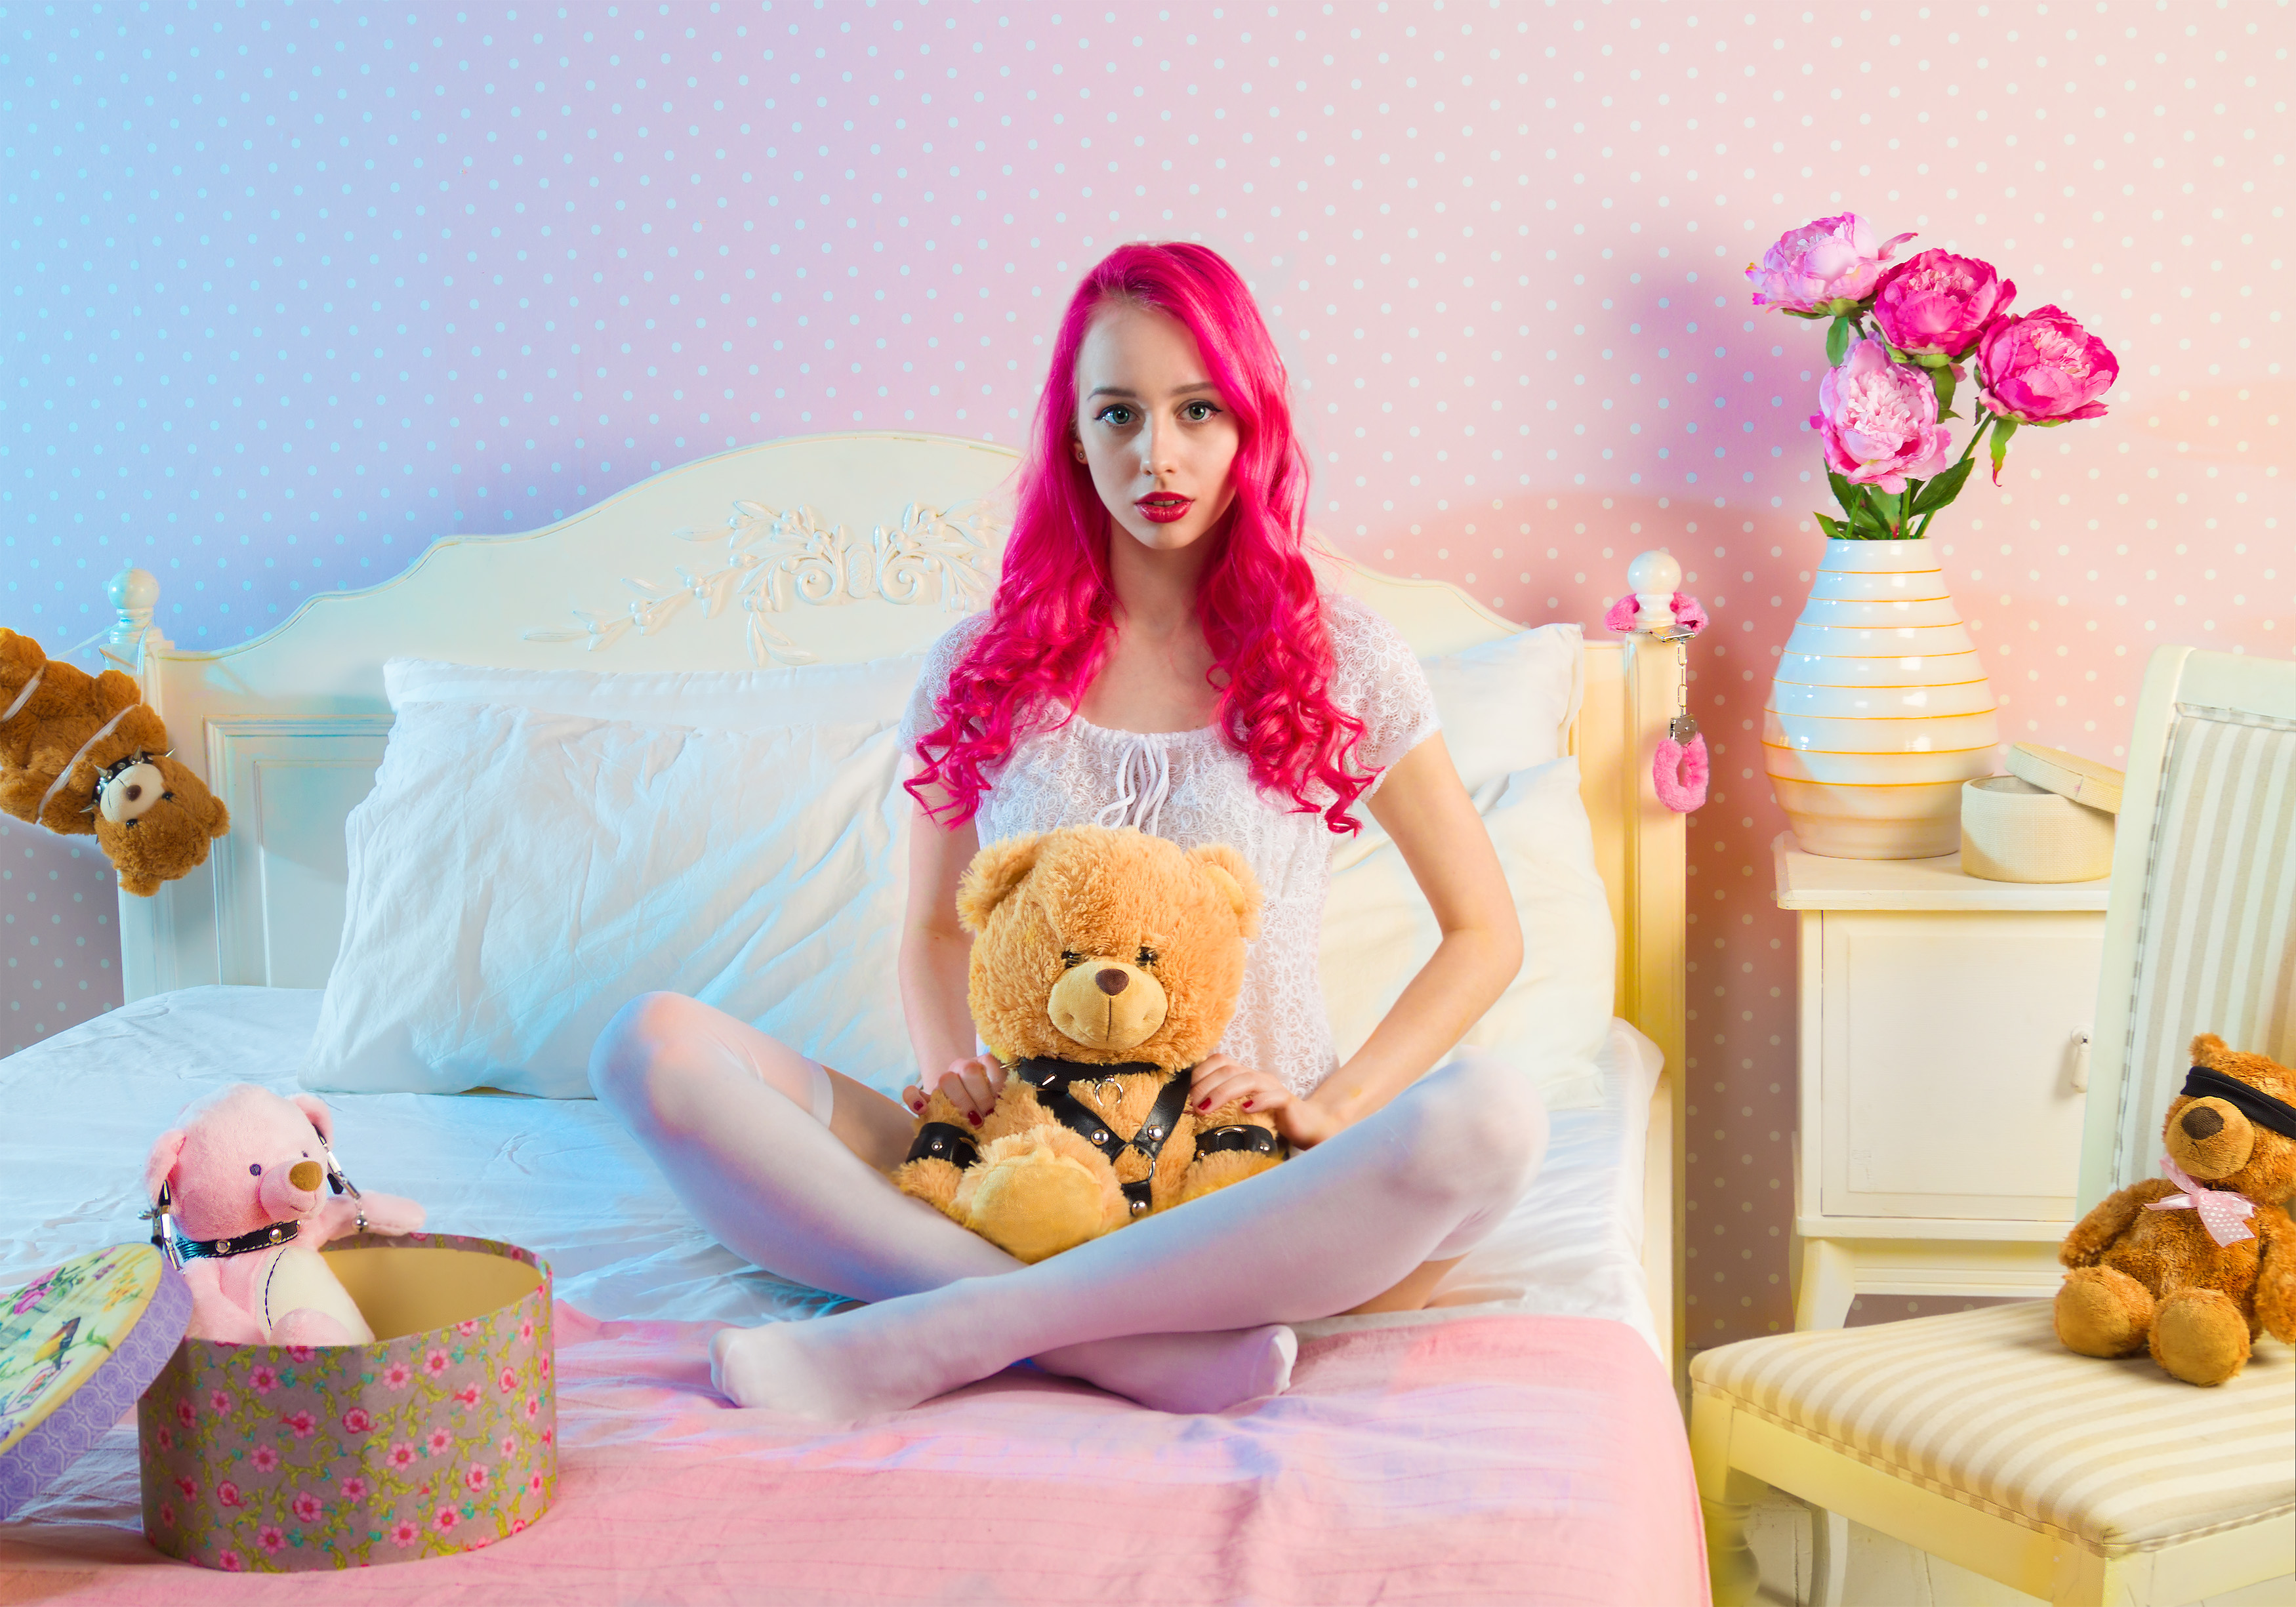 Pink Long Haired Woman Sitting on Double Bed With Bear Plsuh Toy at Daylight · Free Stock Photo